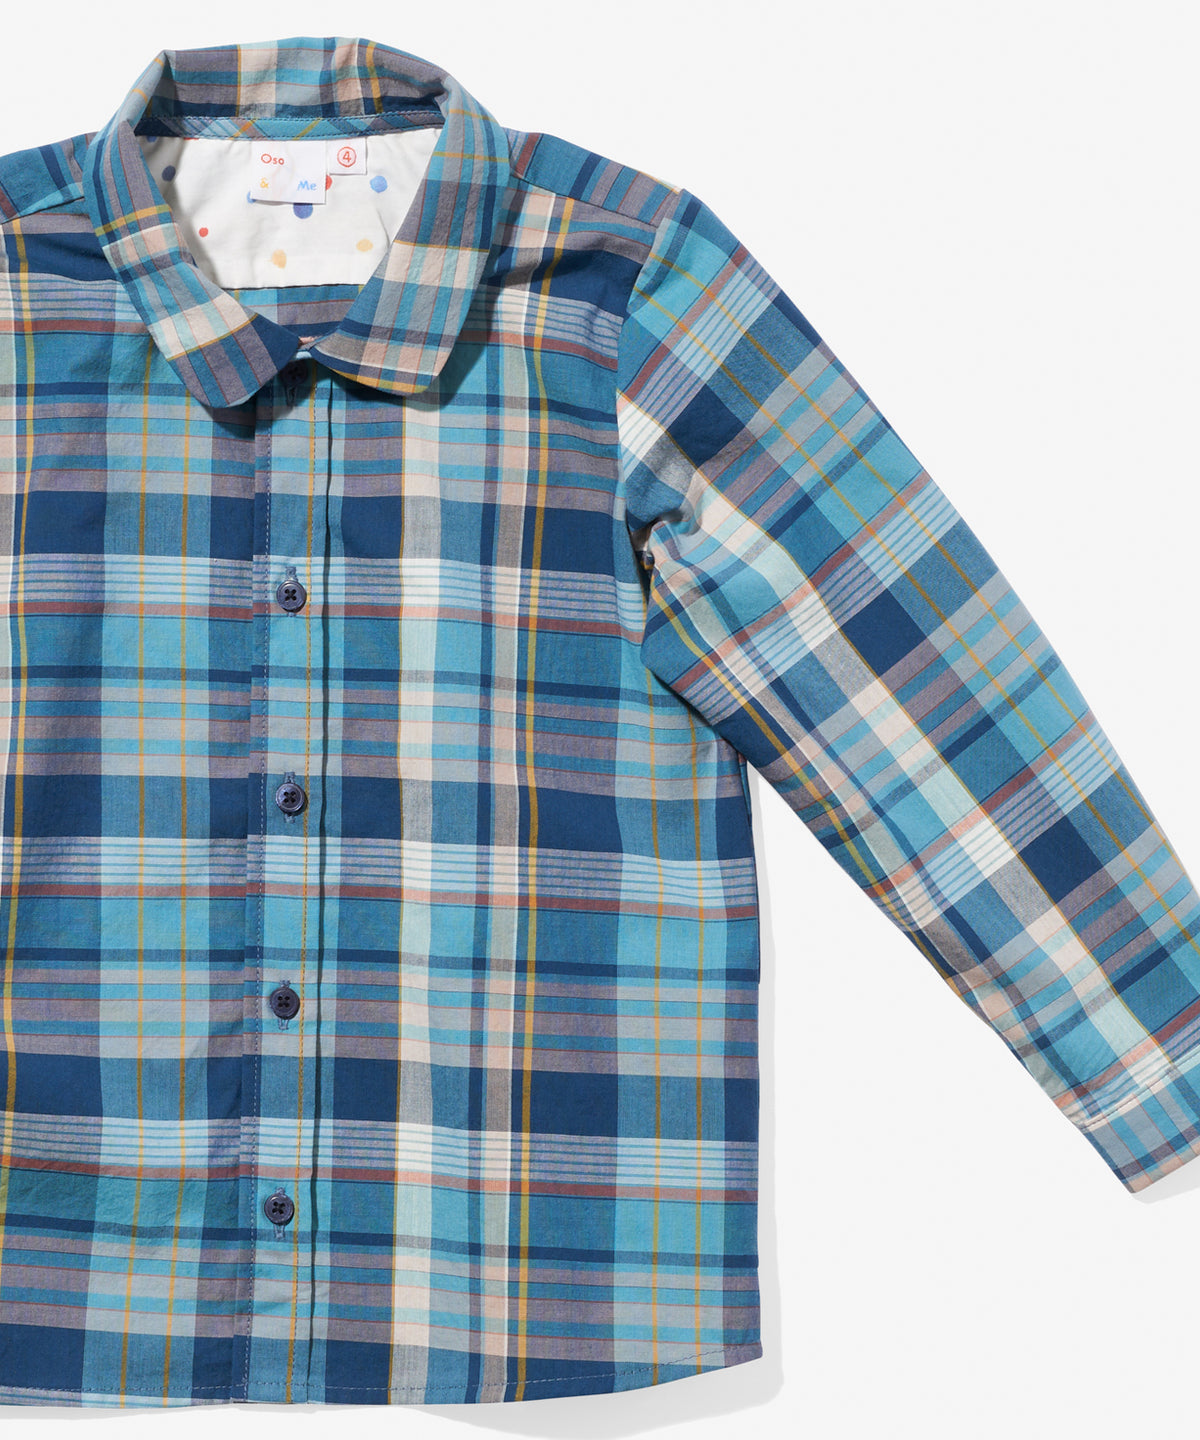 Jefferson Shirt, Madras